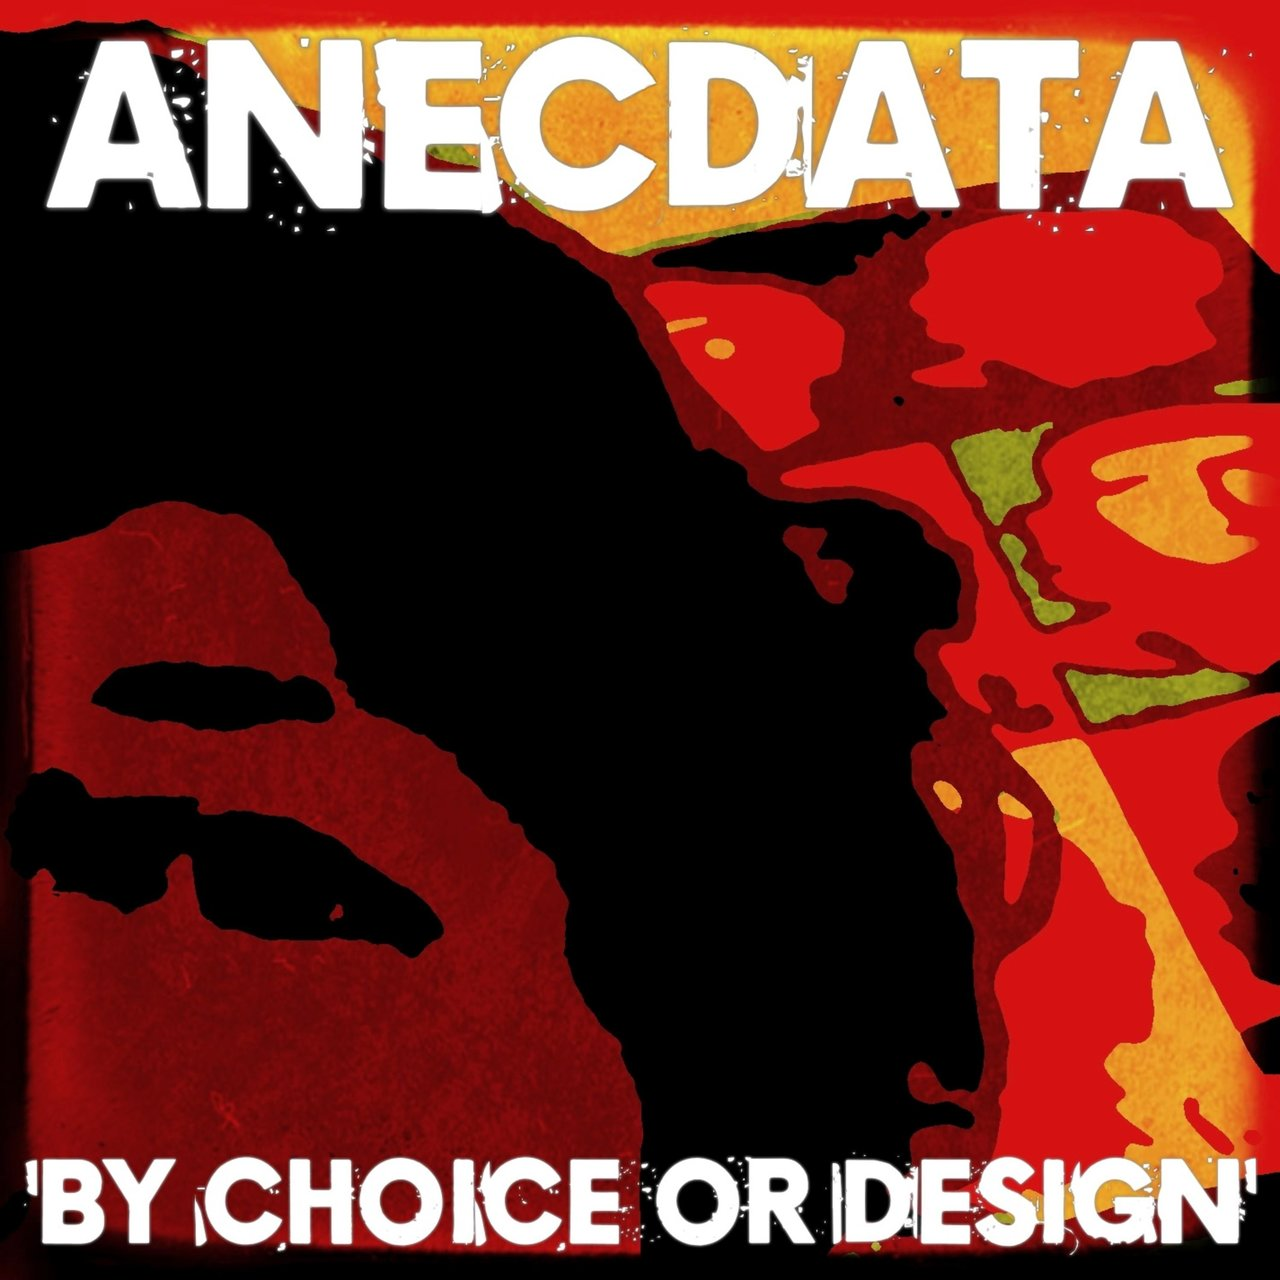 By Choice or Design